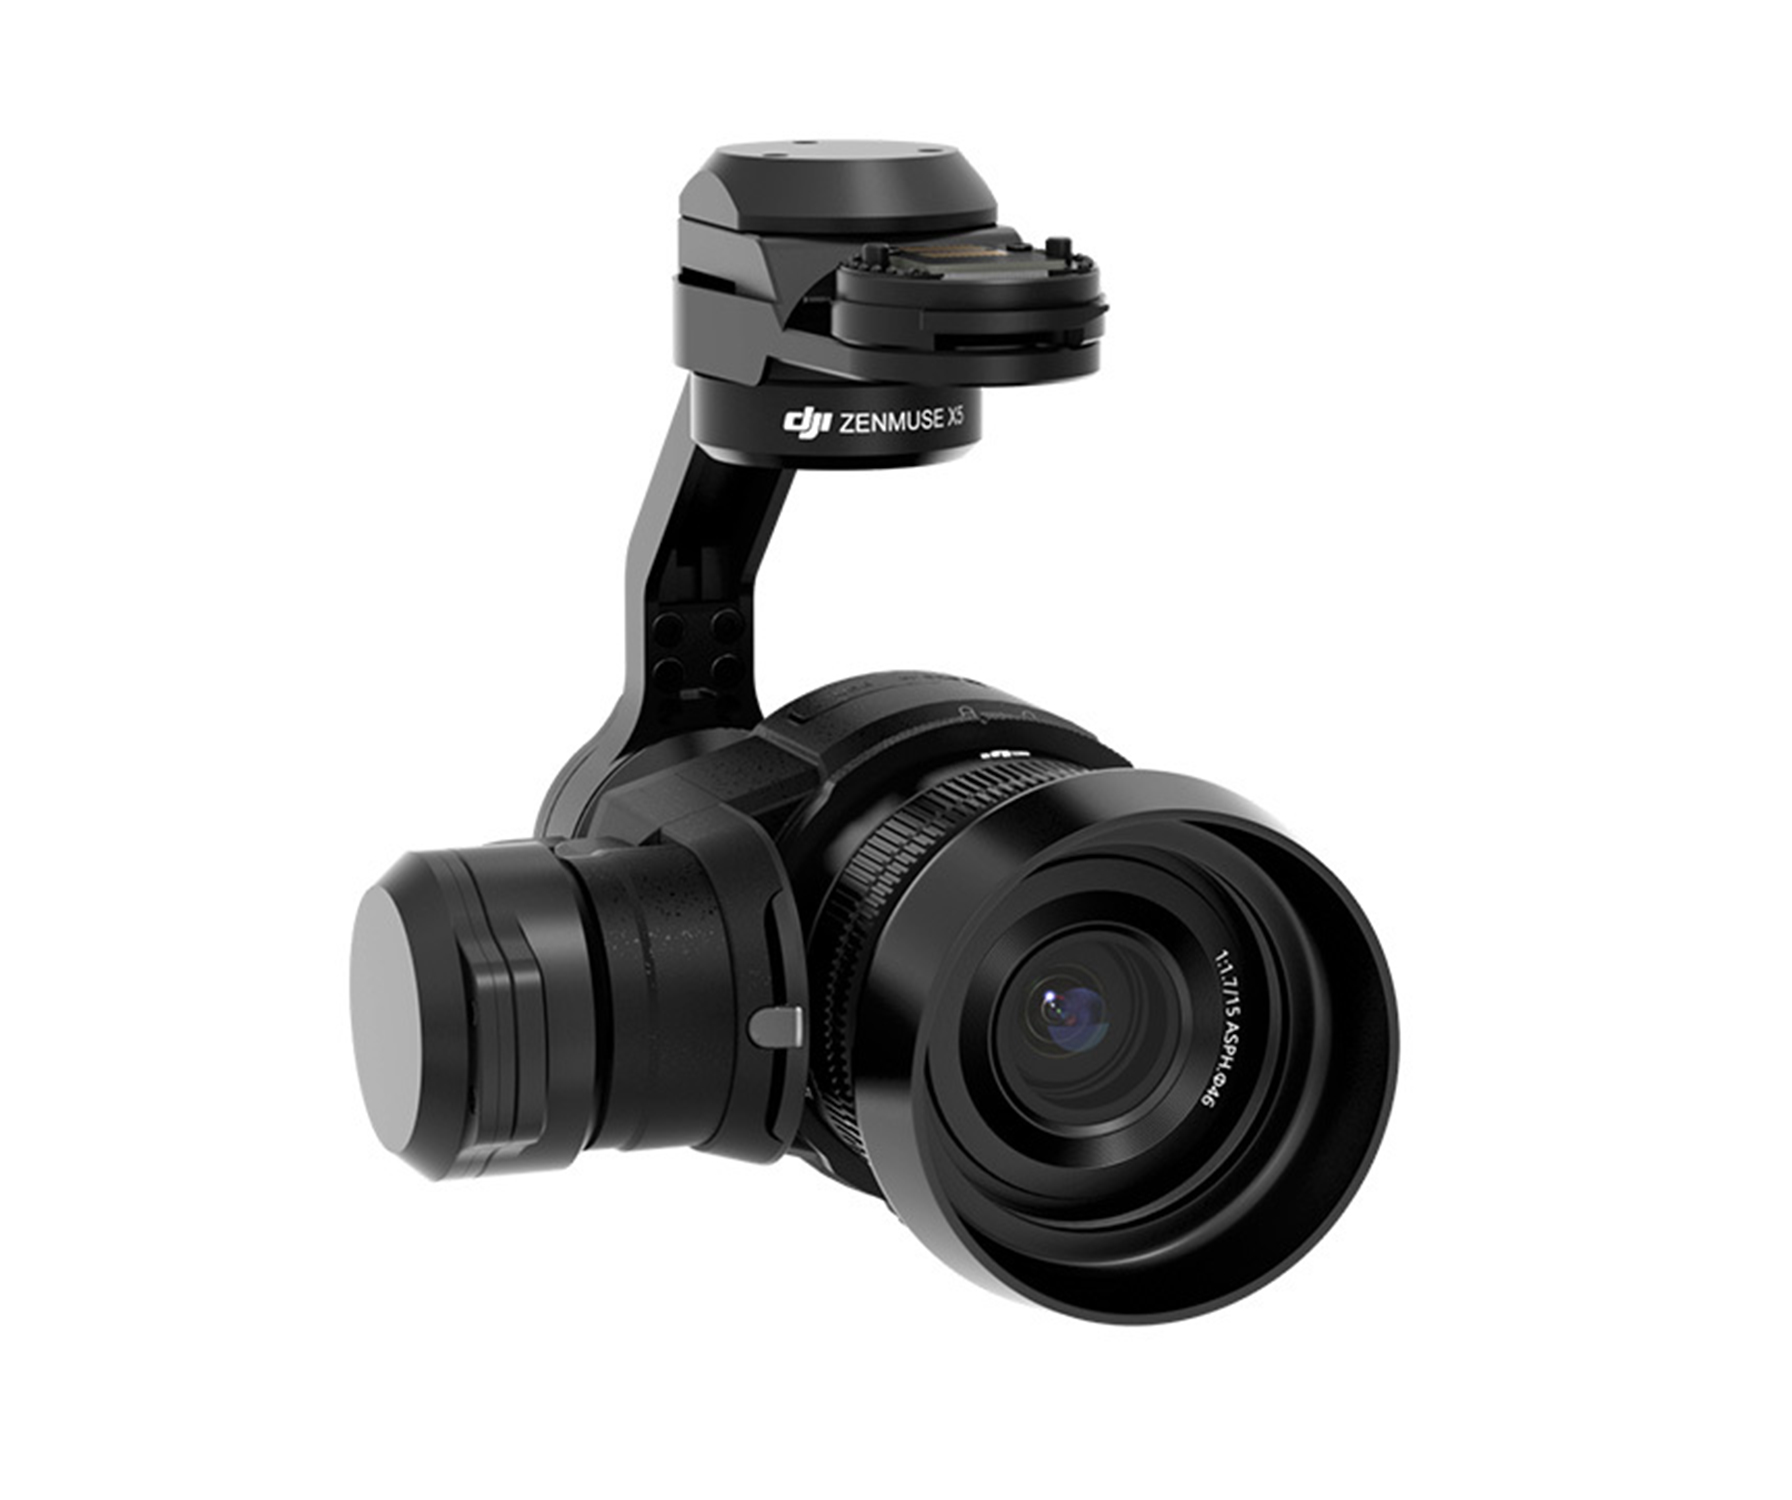 Zenmuse X5 gimbal and camera (with MFT Lens)